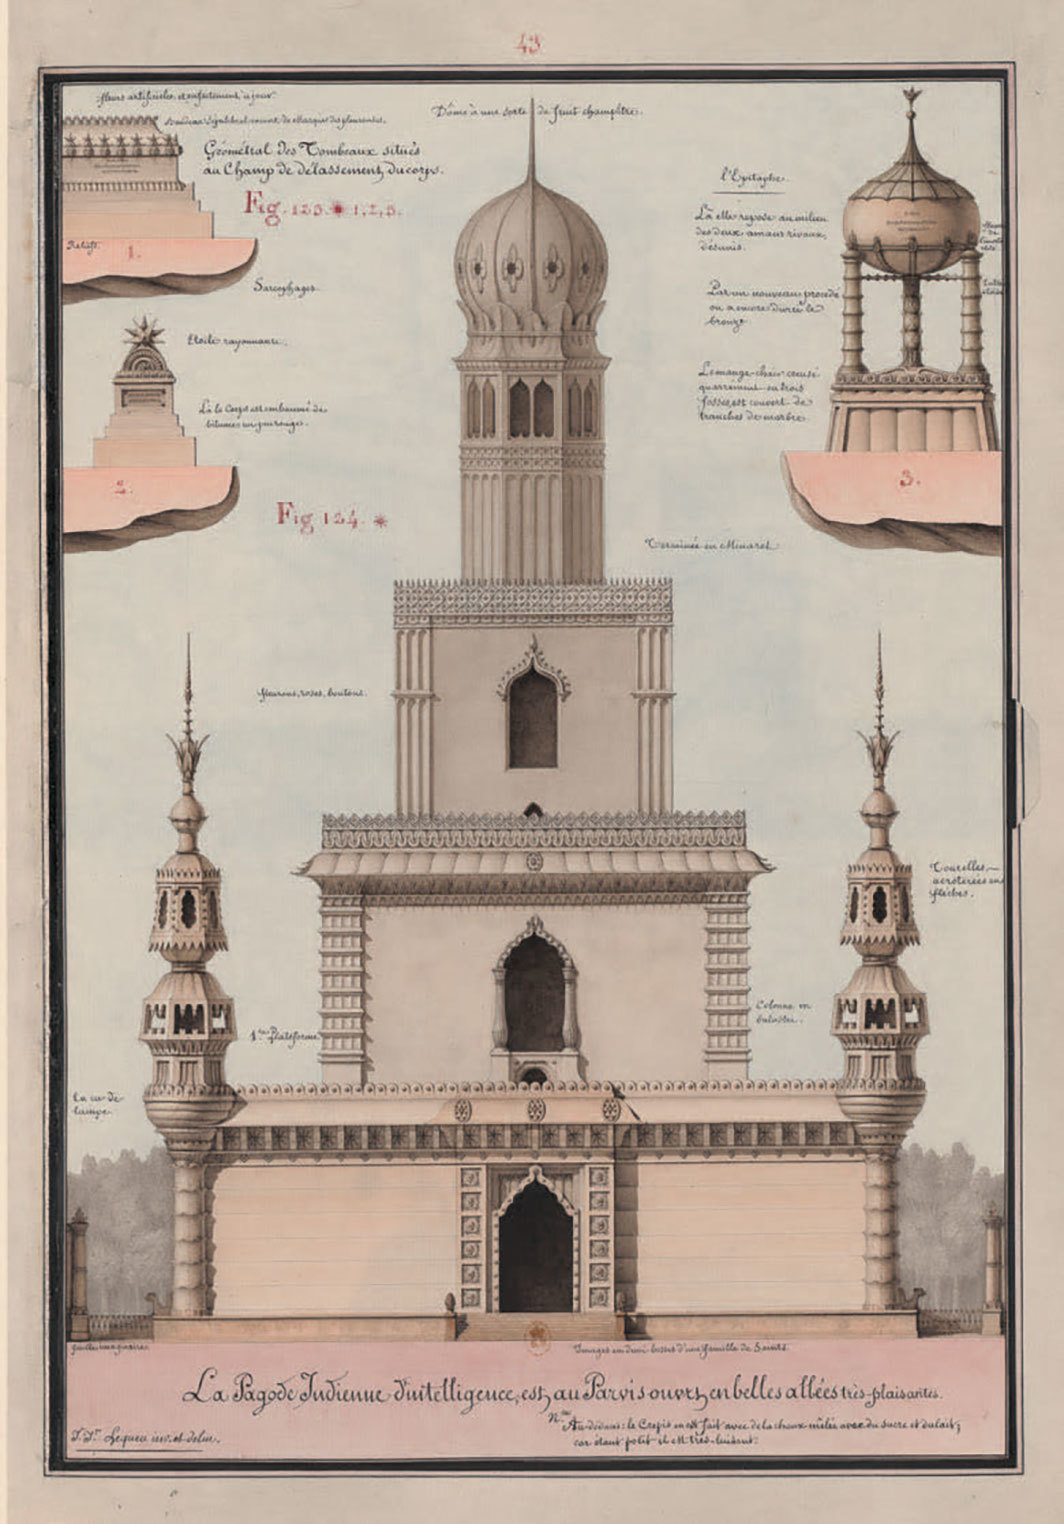 "Jean-Jacques Lequeu, Pagode indienne d'intelligence et tombeaux (Indian Pagoda of Intelligence and Tombs), 1777–1825, pen, ink, wash, and watercolor on paper, 17 1⁄2 x 12 1⁄8"". From ""Architecture civile"" (Civil Architecture), 1777–1825."